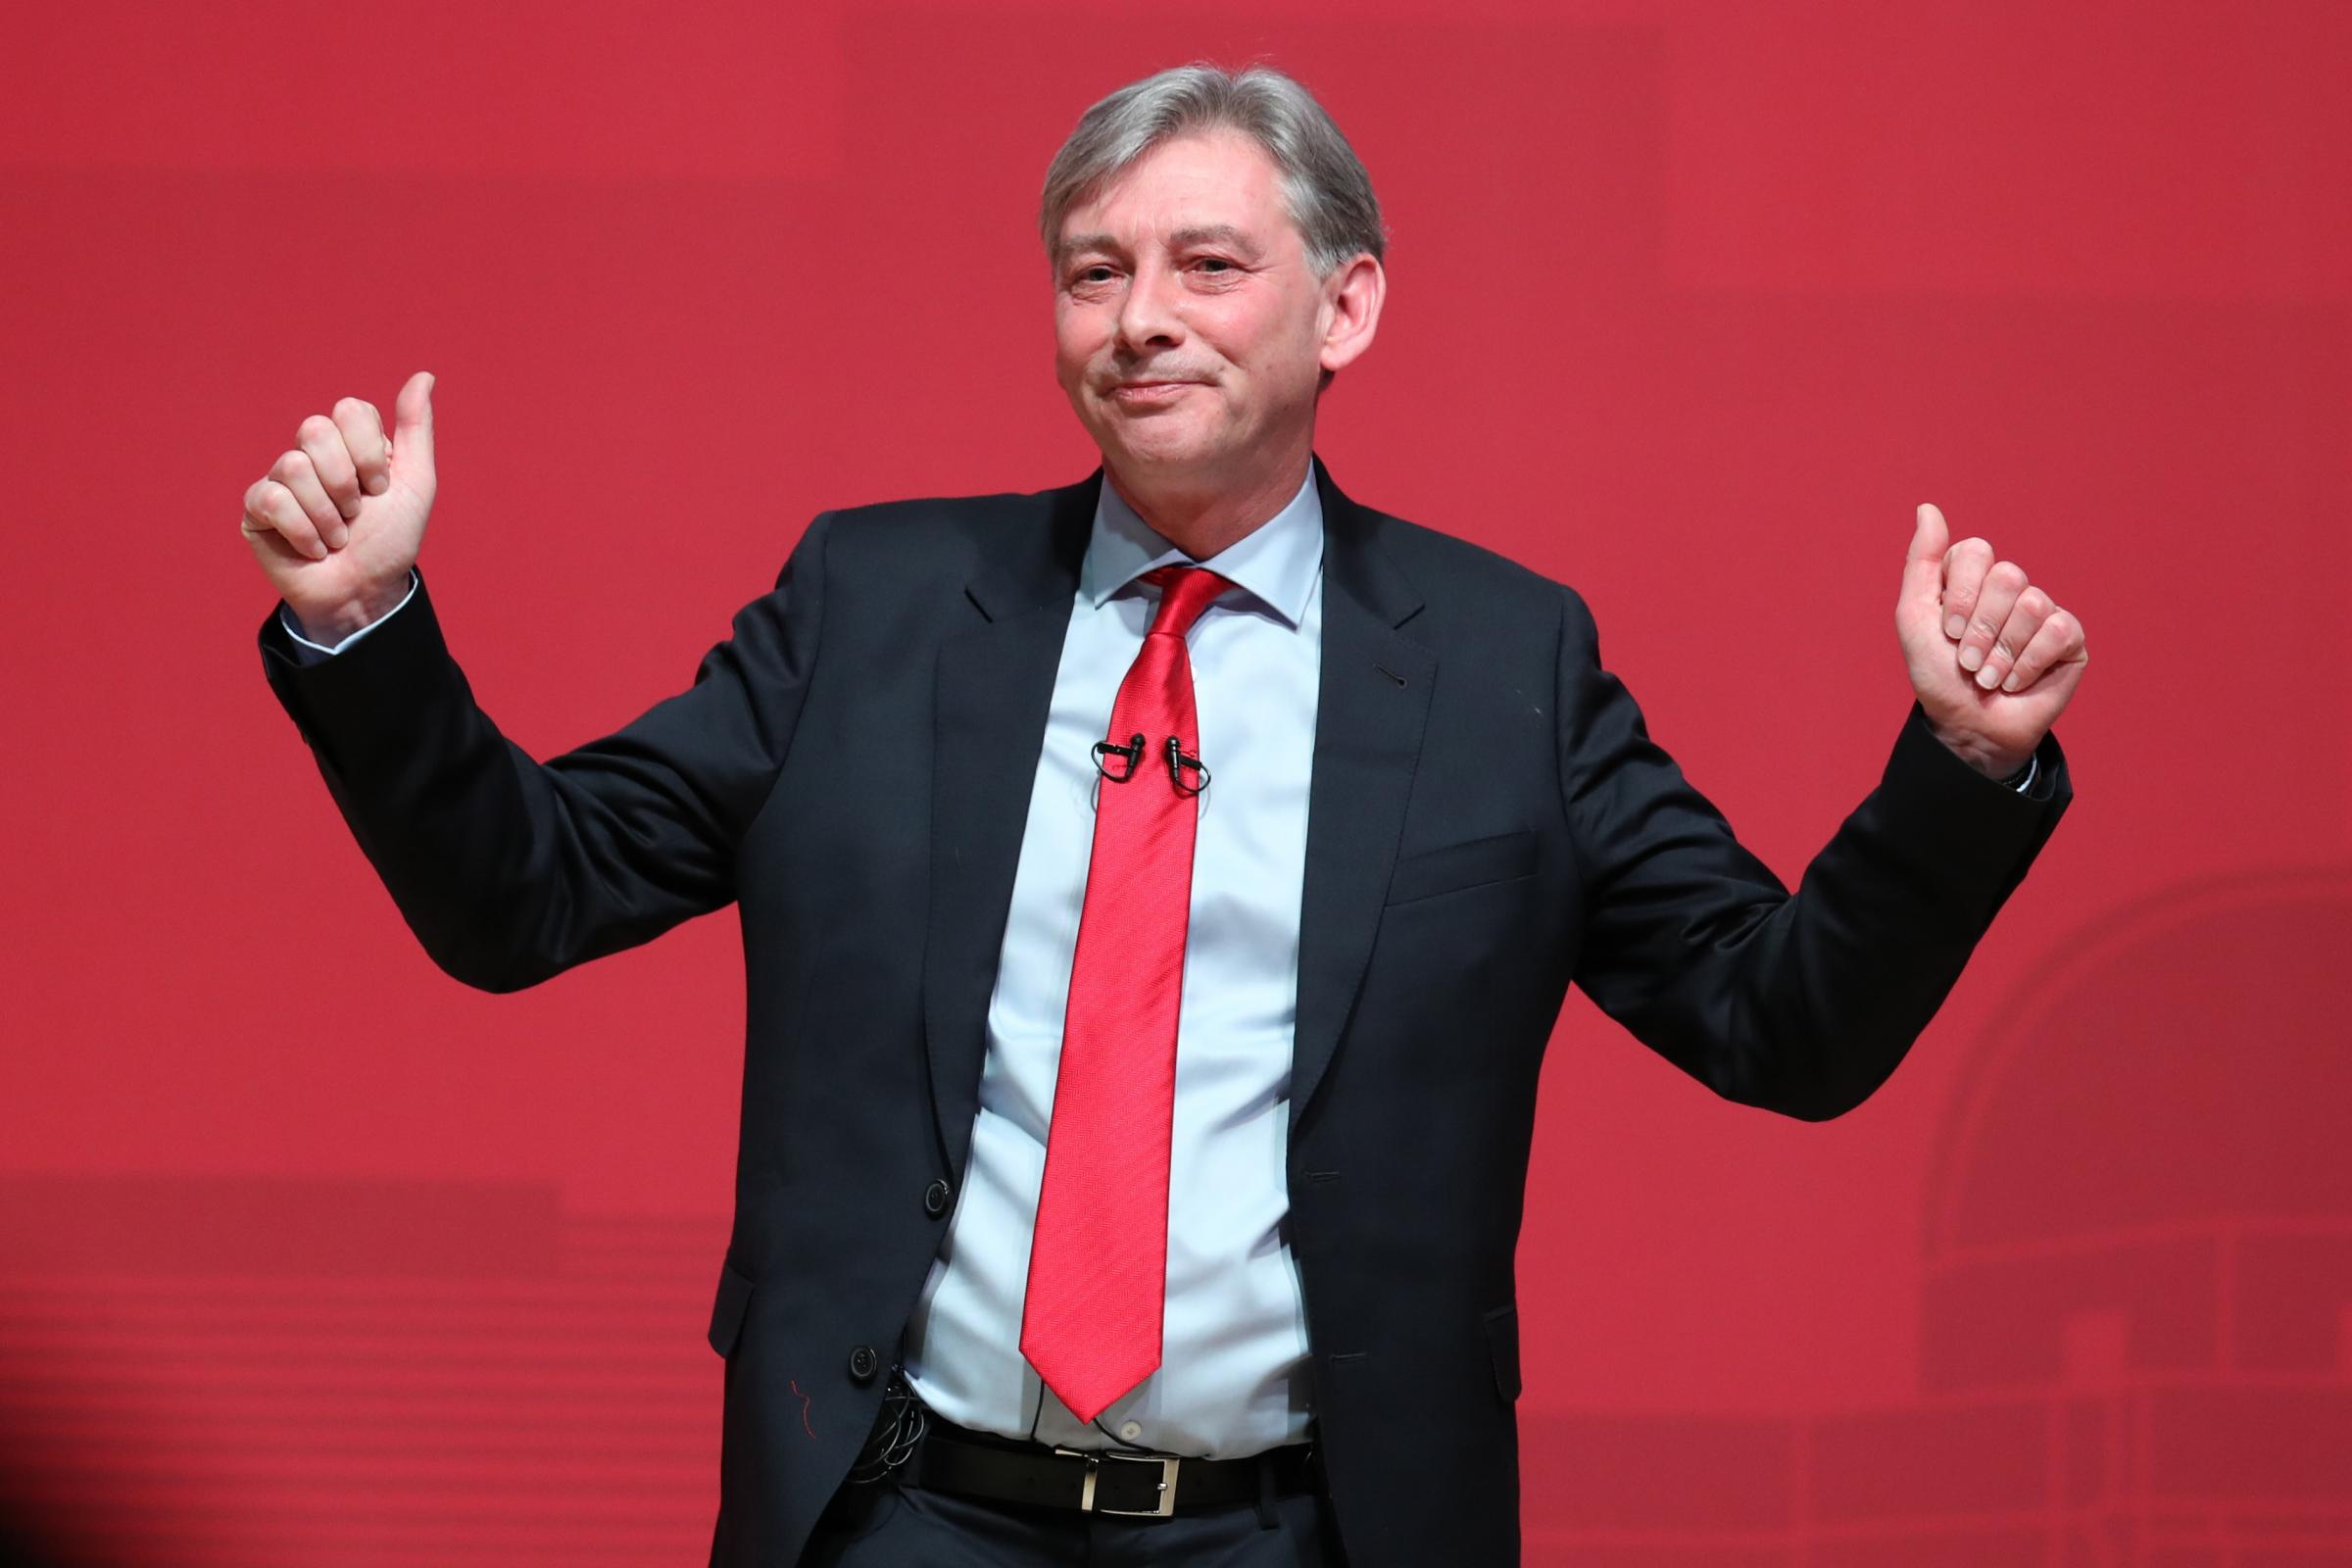 Scottish Labour facing wipe-out in snap election, finds internal polling